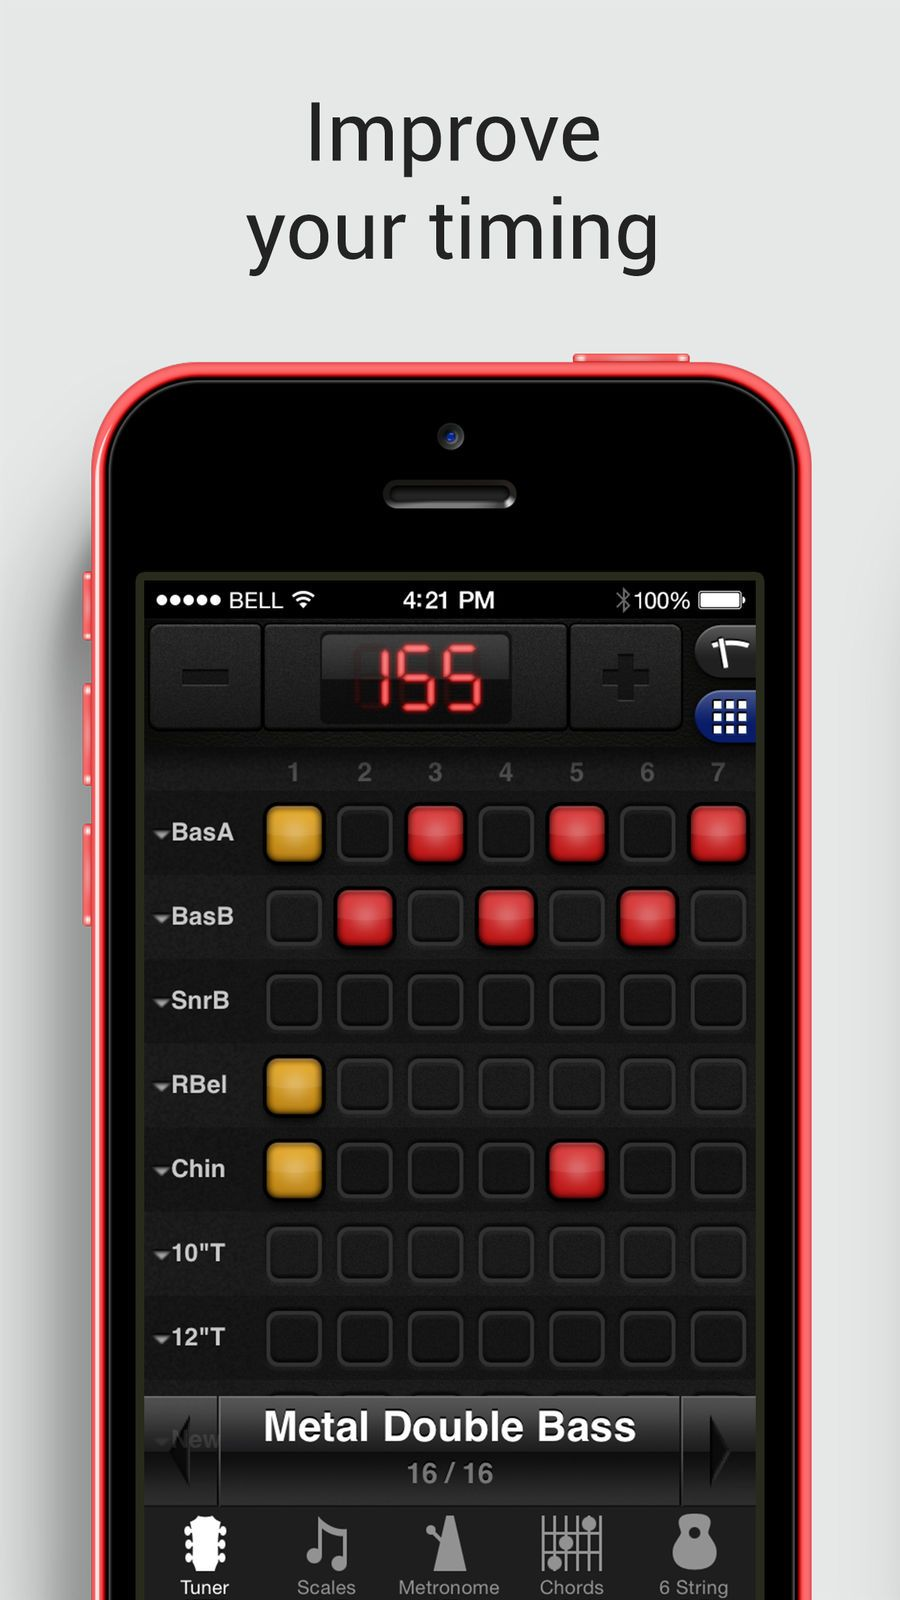 GuitarToolkit tuner, metronome, chords & scales on the